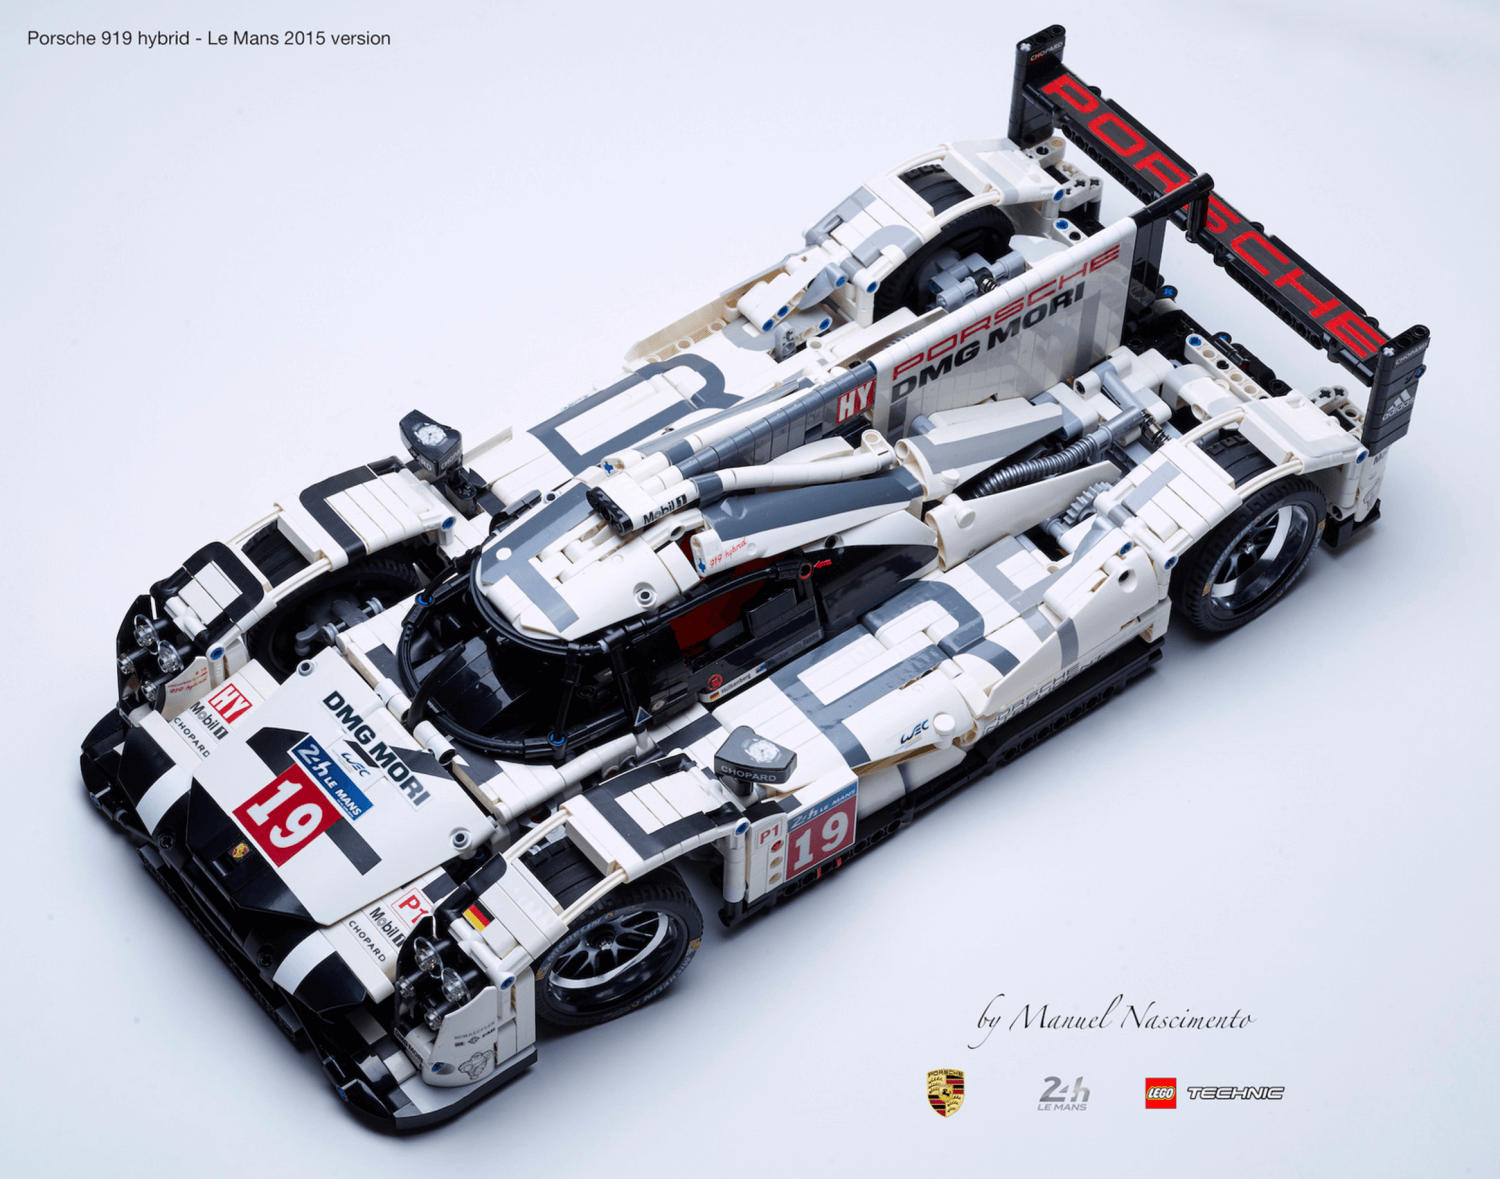 Amazing Fan-built LEGO Technic Porsche 919, The 2015 Le Mans winner - DriveLife DriveLife